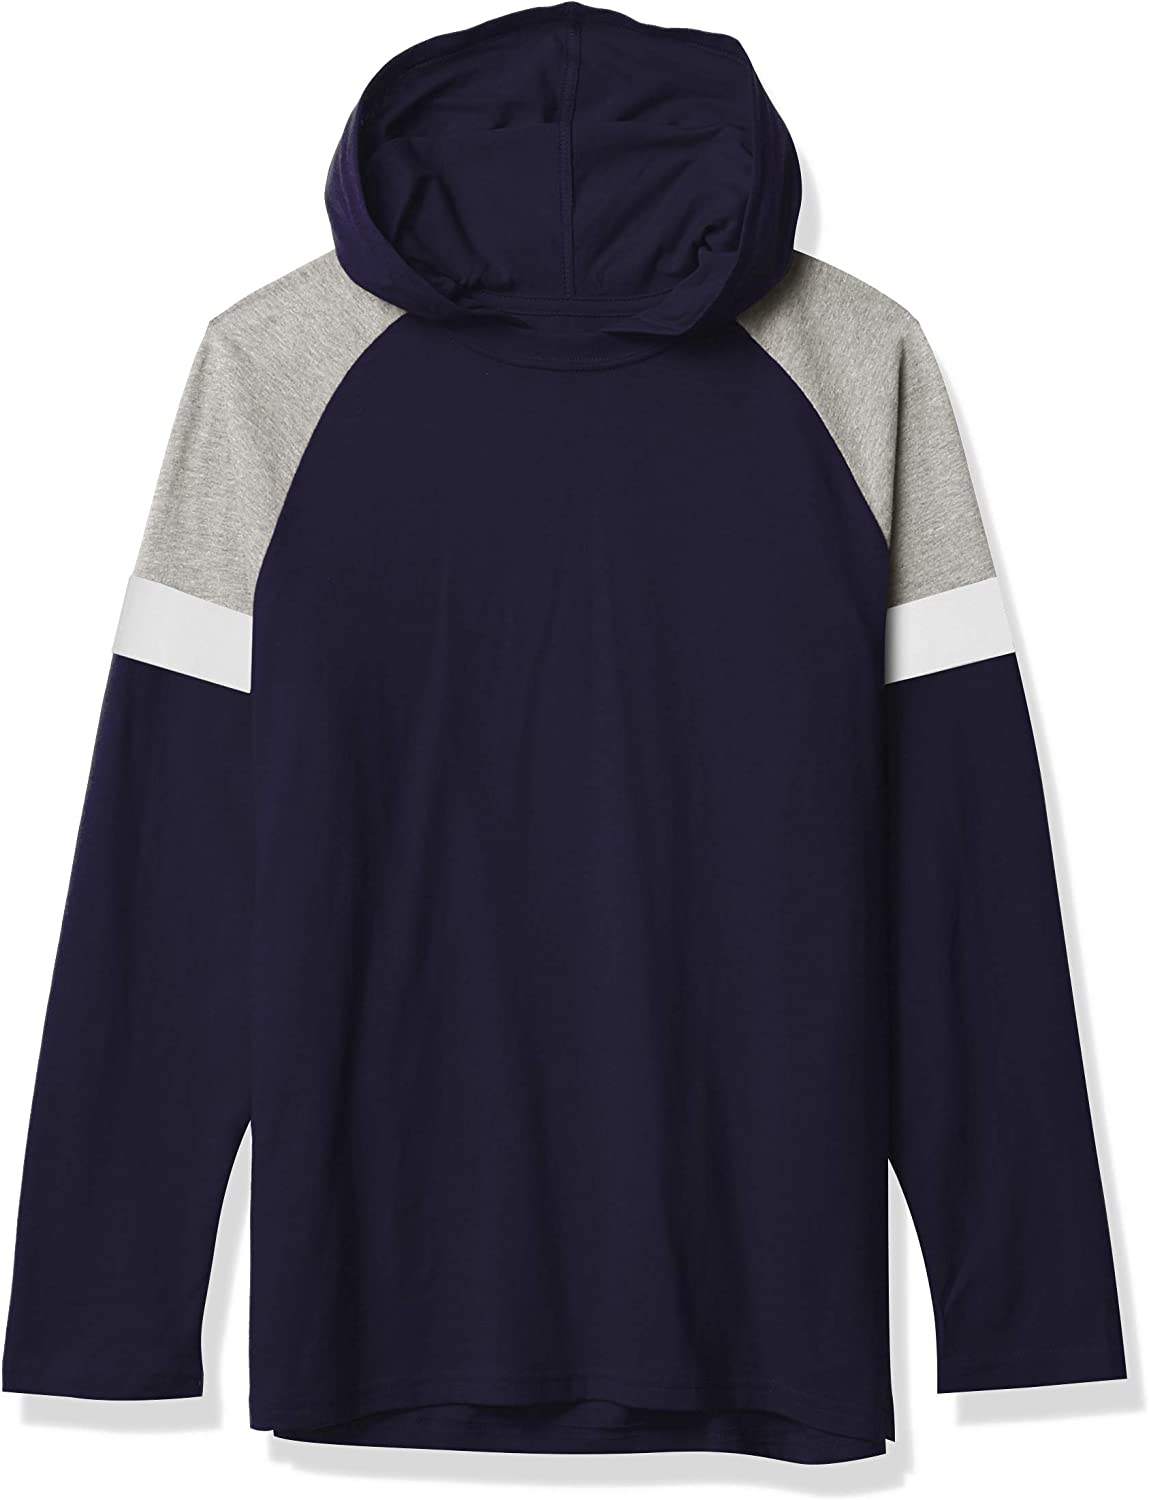 The Children's Place Boys' Colorblock Hoodie Top